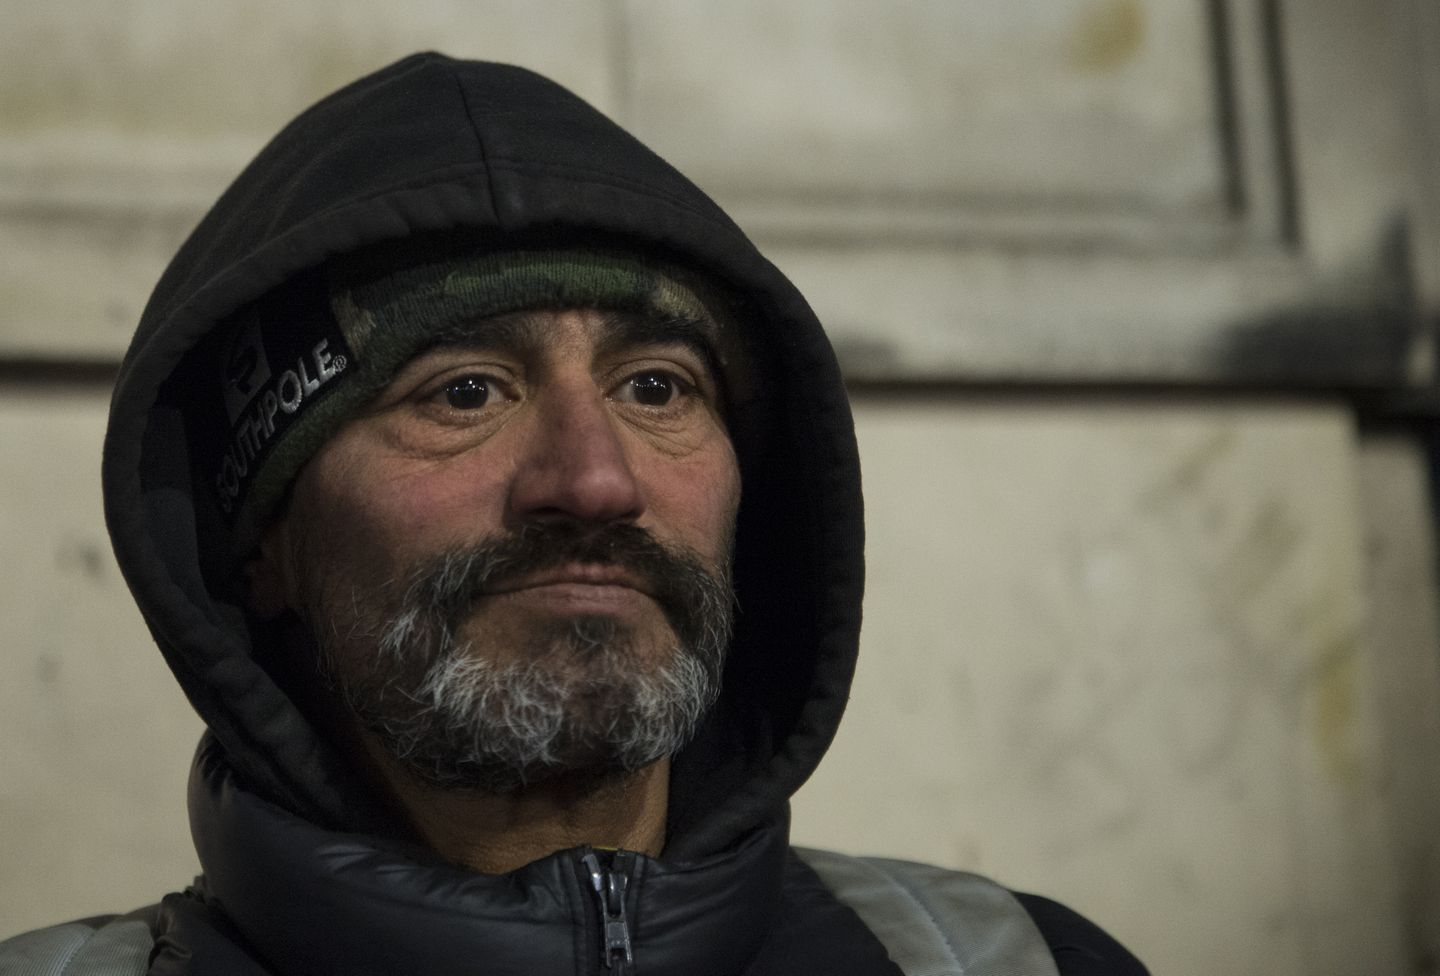 Jose Ortega, 53, posed for a portrait during the 2020 Homeless Census. He has been homeless on and off since 2006.